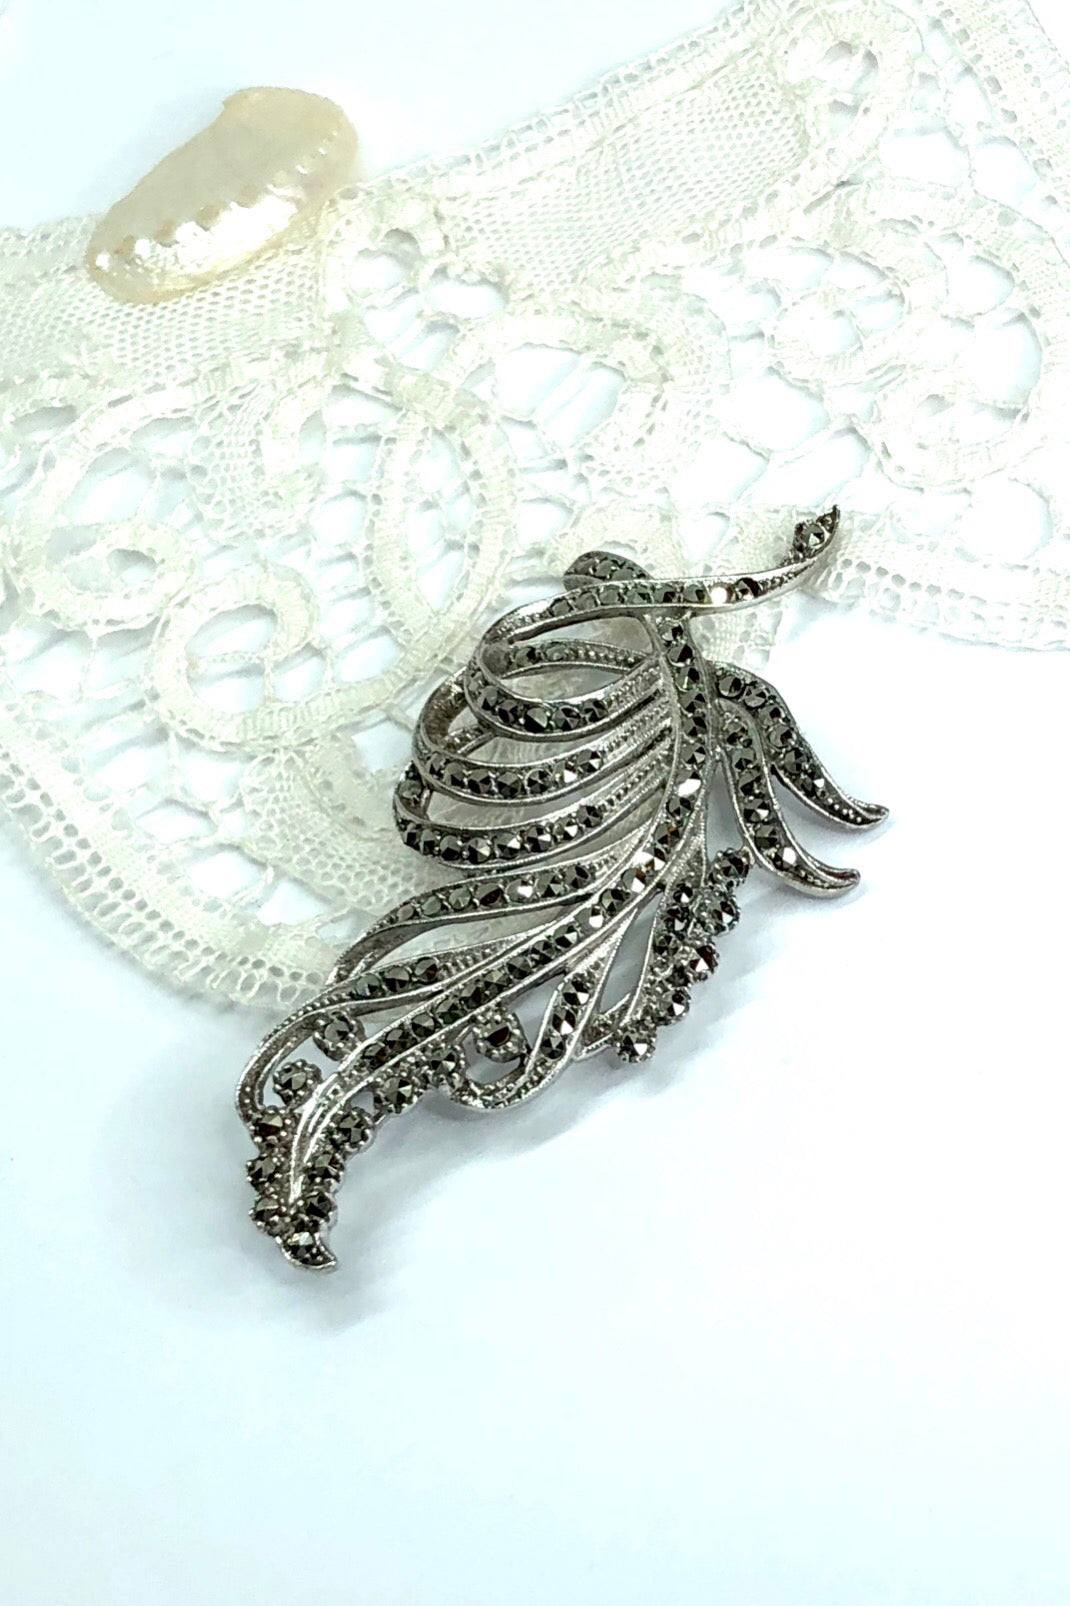 A wonderful sterling silver sparkling marcasite brooch from the Retro era, c1950!